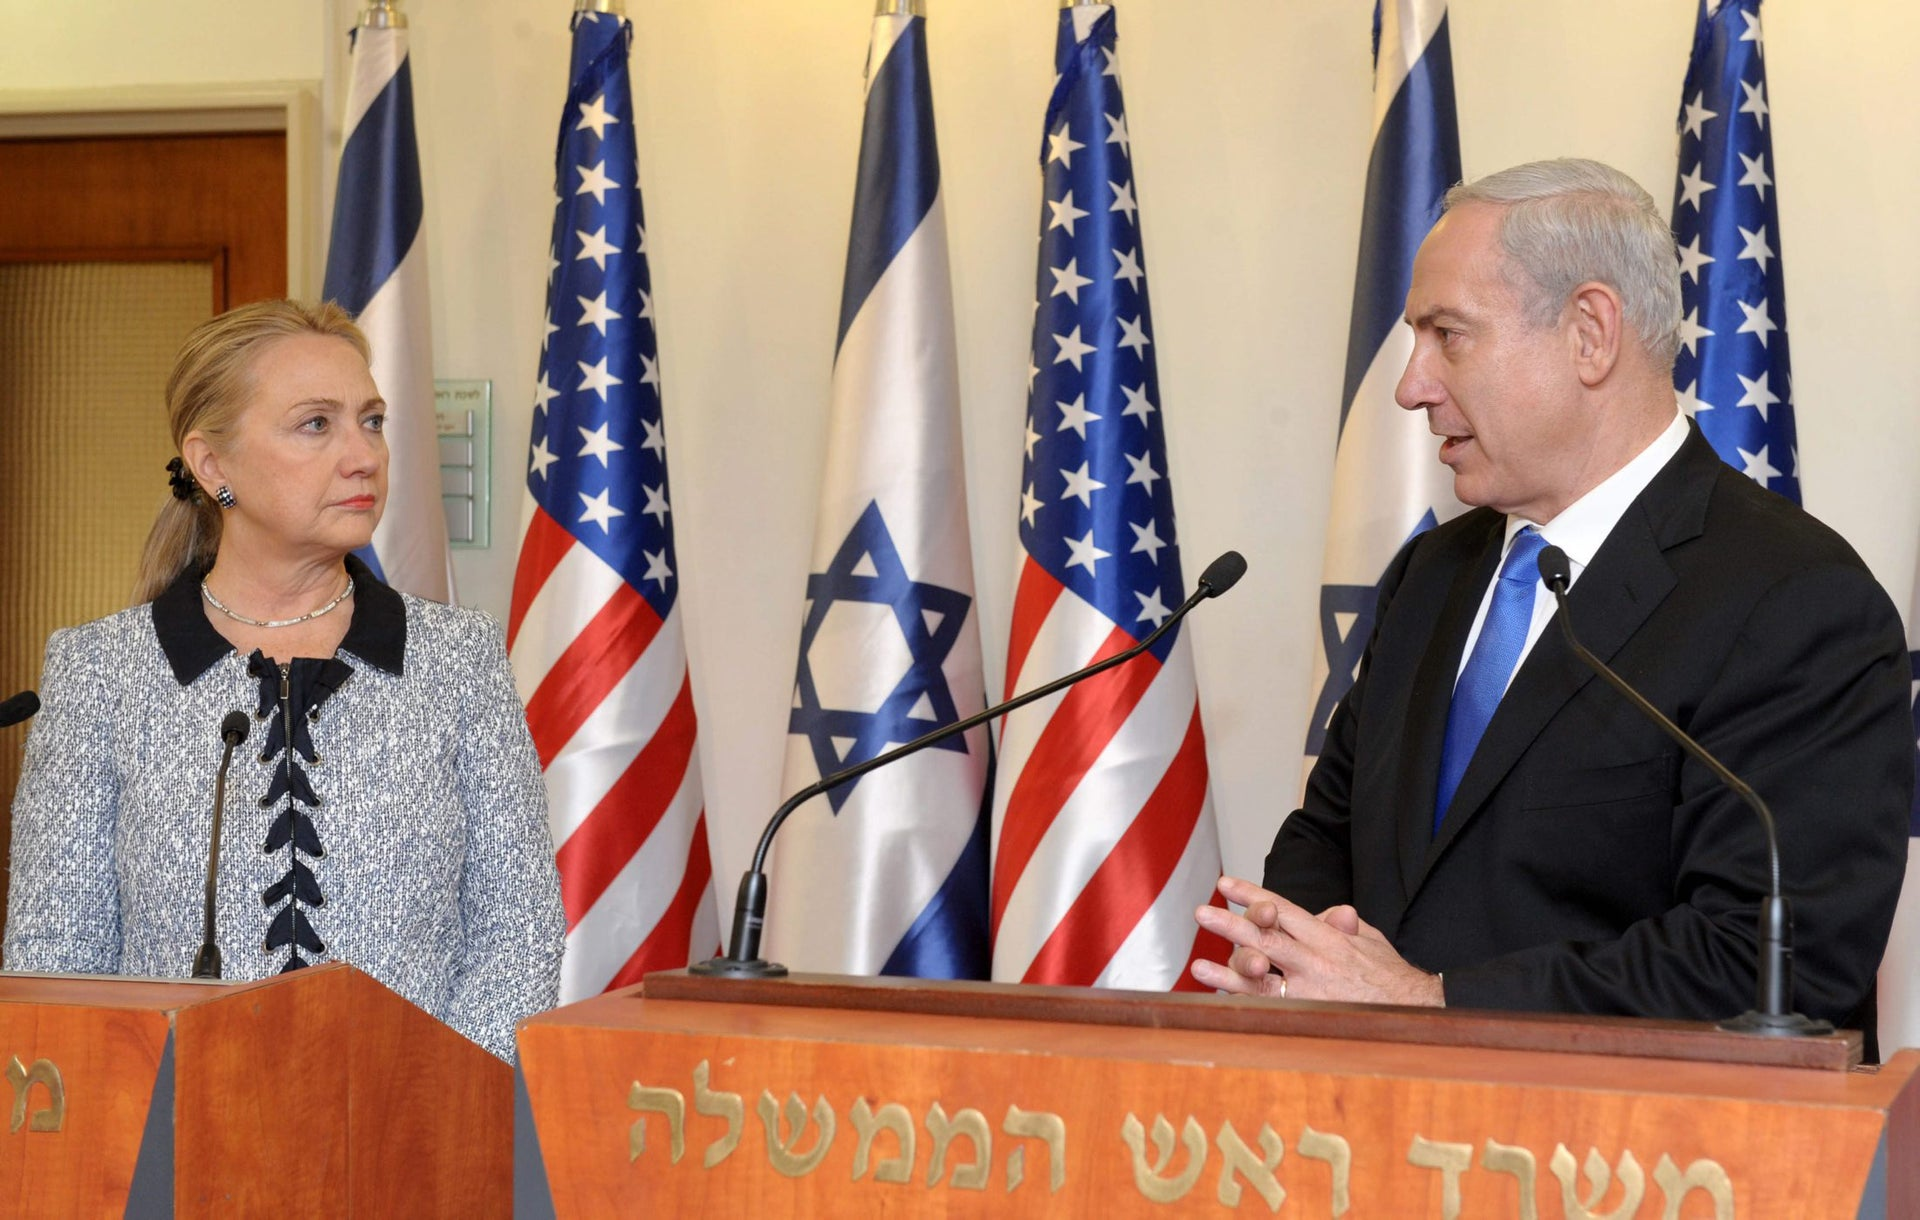 Israel's Prime Minister Benjamin Netanyahu and then-U.S. Secretary of State Hillary Clinton delivering joint statements in Jerusalem on November 20, 2012.